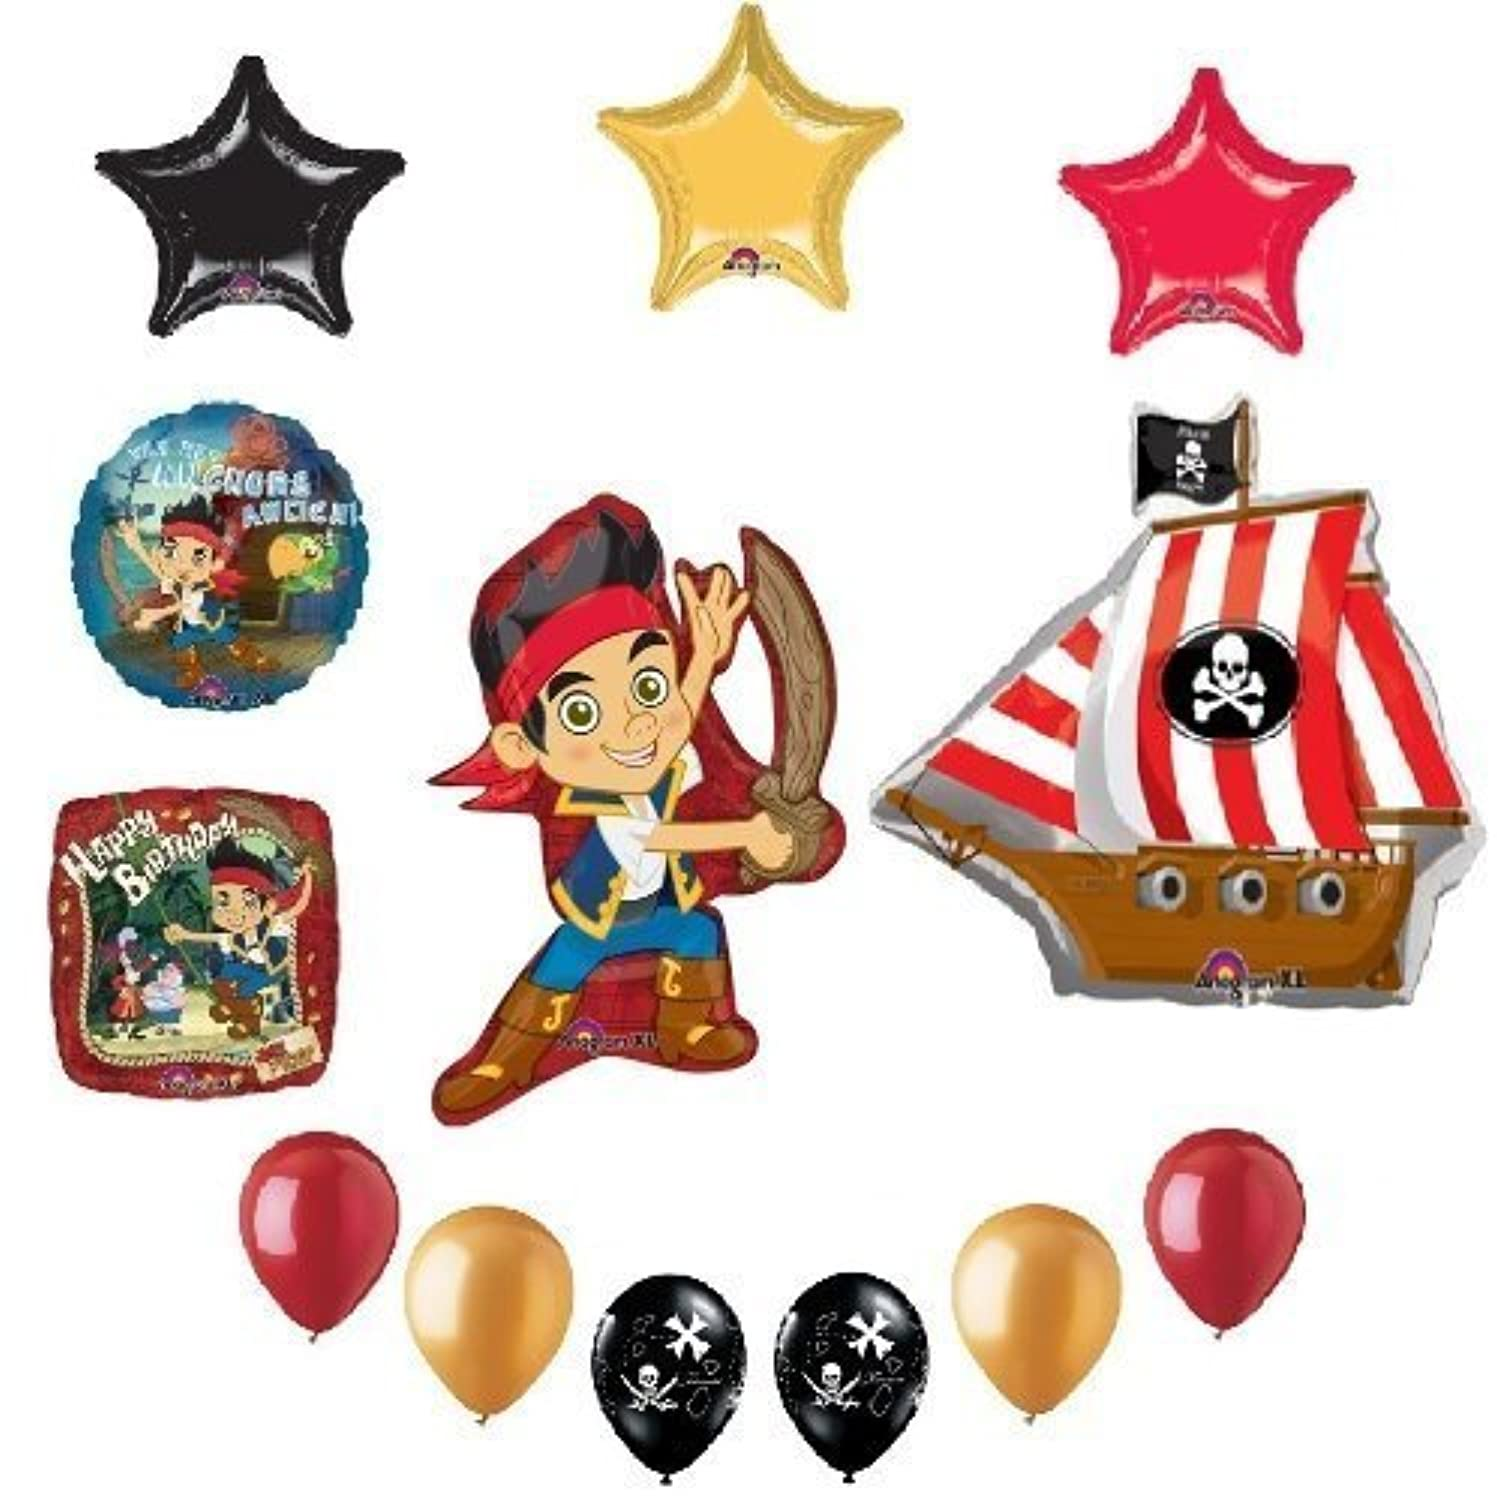 JAKE and the NEVER Land PIRATES 13 Birthday Party Supplies Mylar Latex BALLOONS by Lgp [並行輸入品]